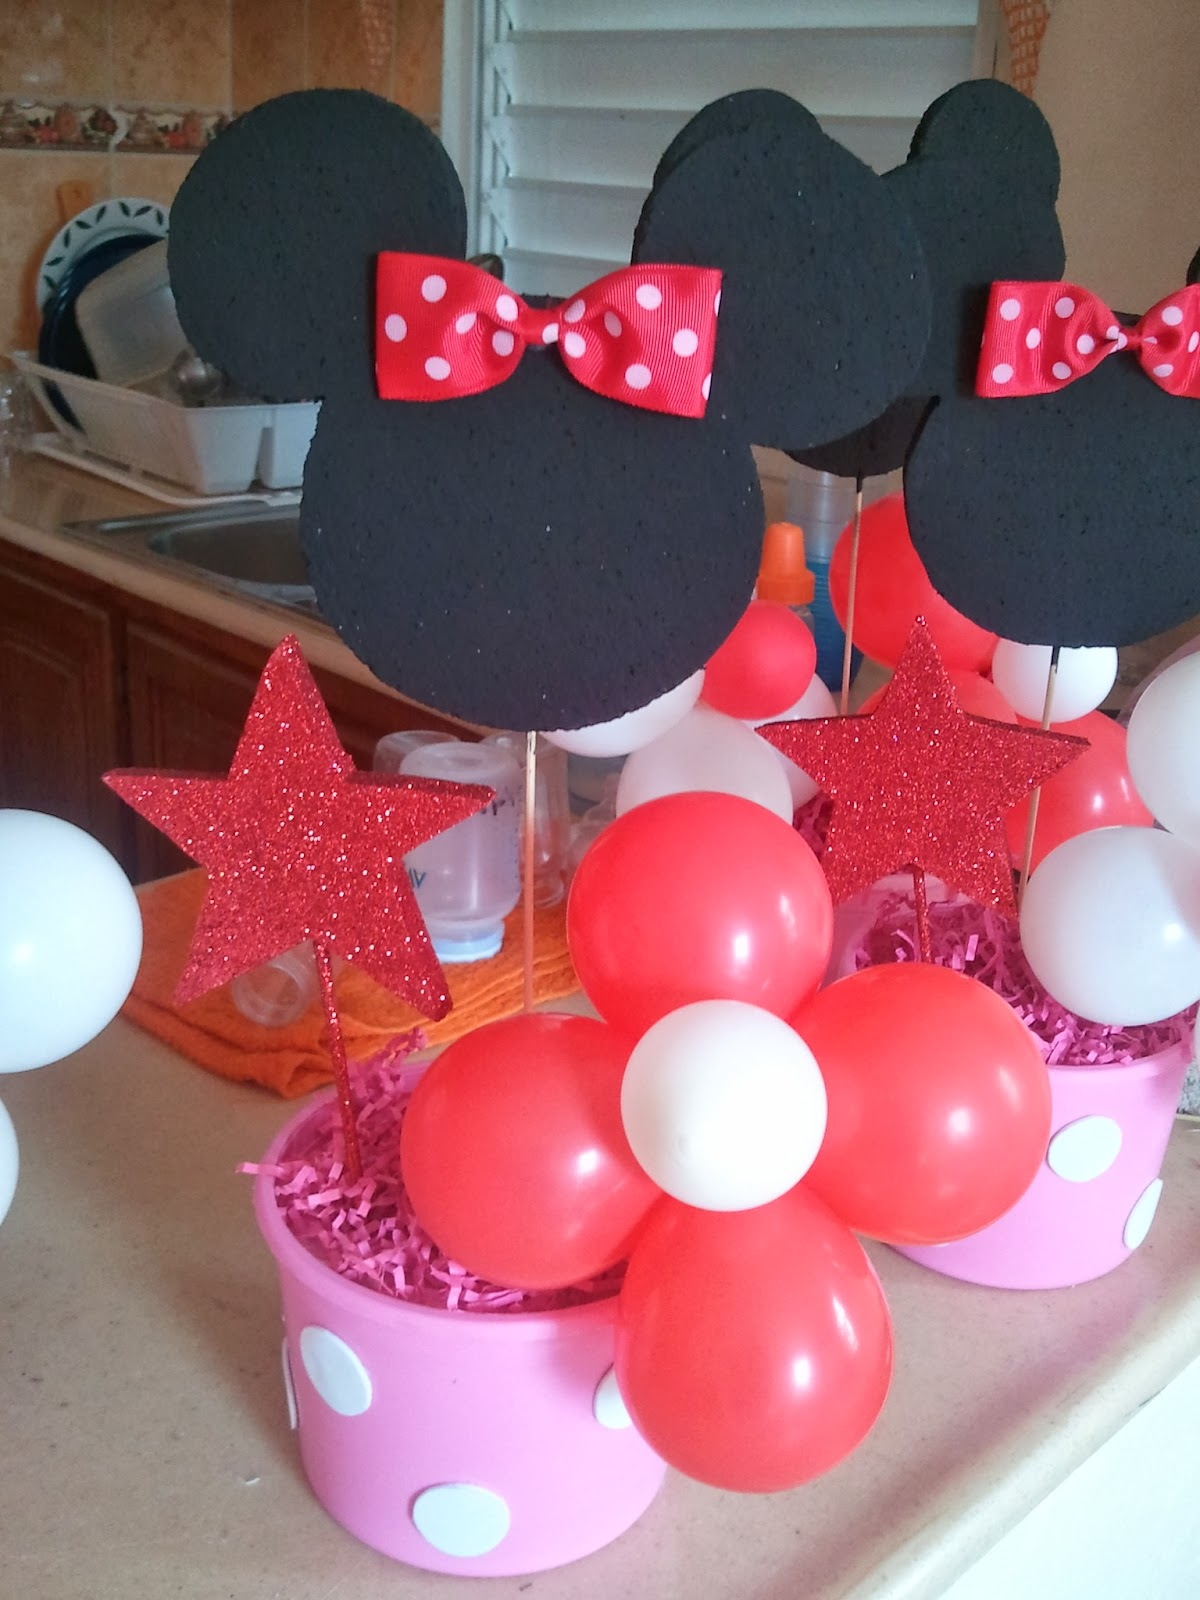 Diy minnie mouse birthday decor image inspiration of for Baby minnie mouse decoration ideas